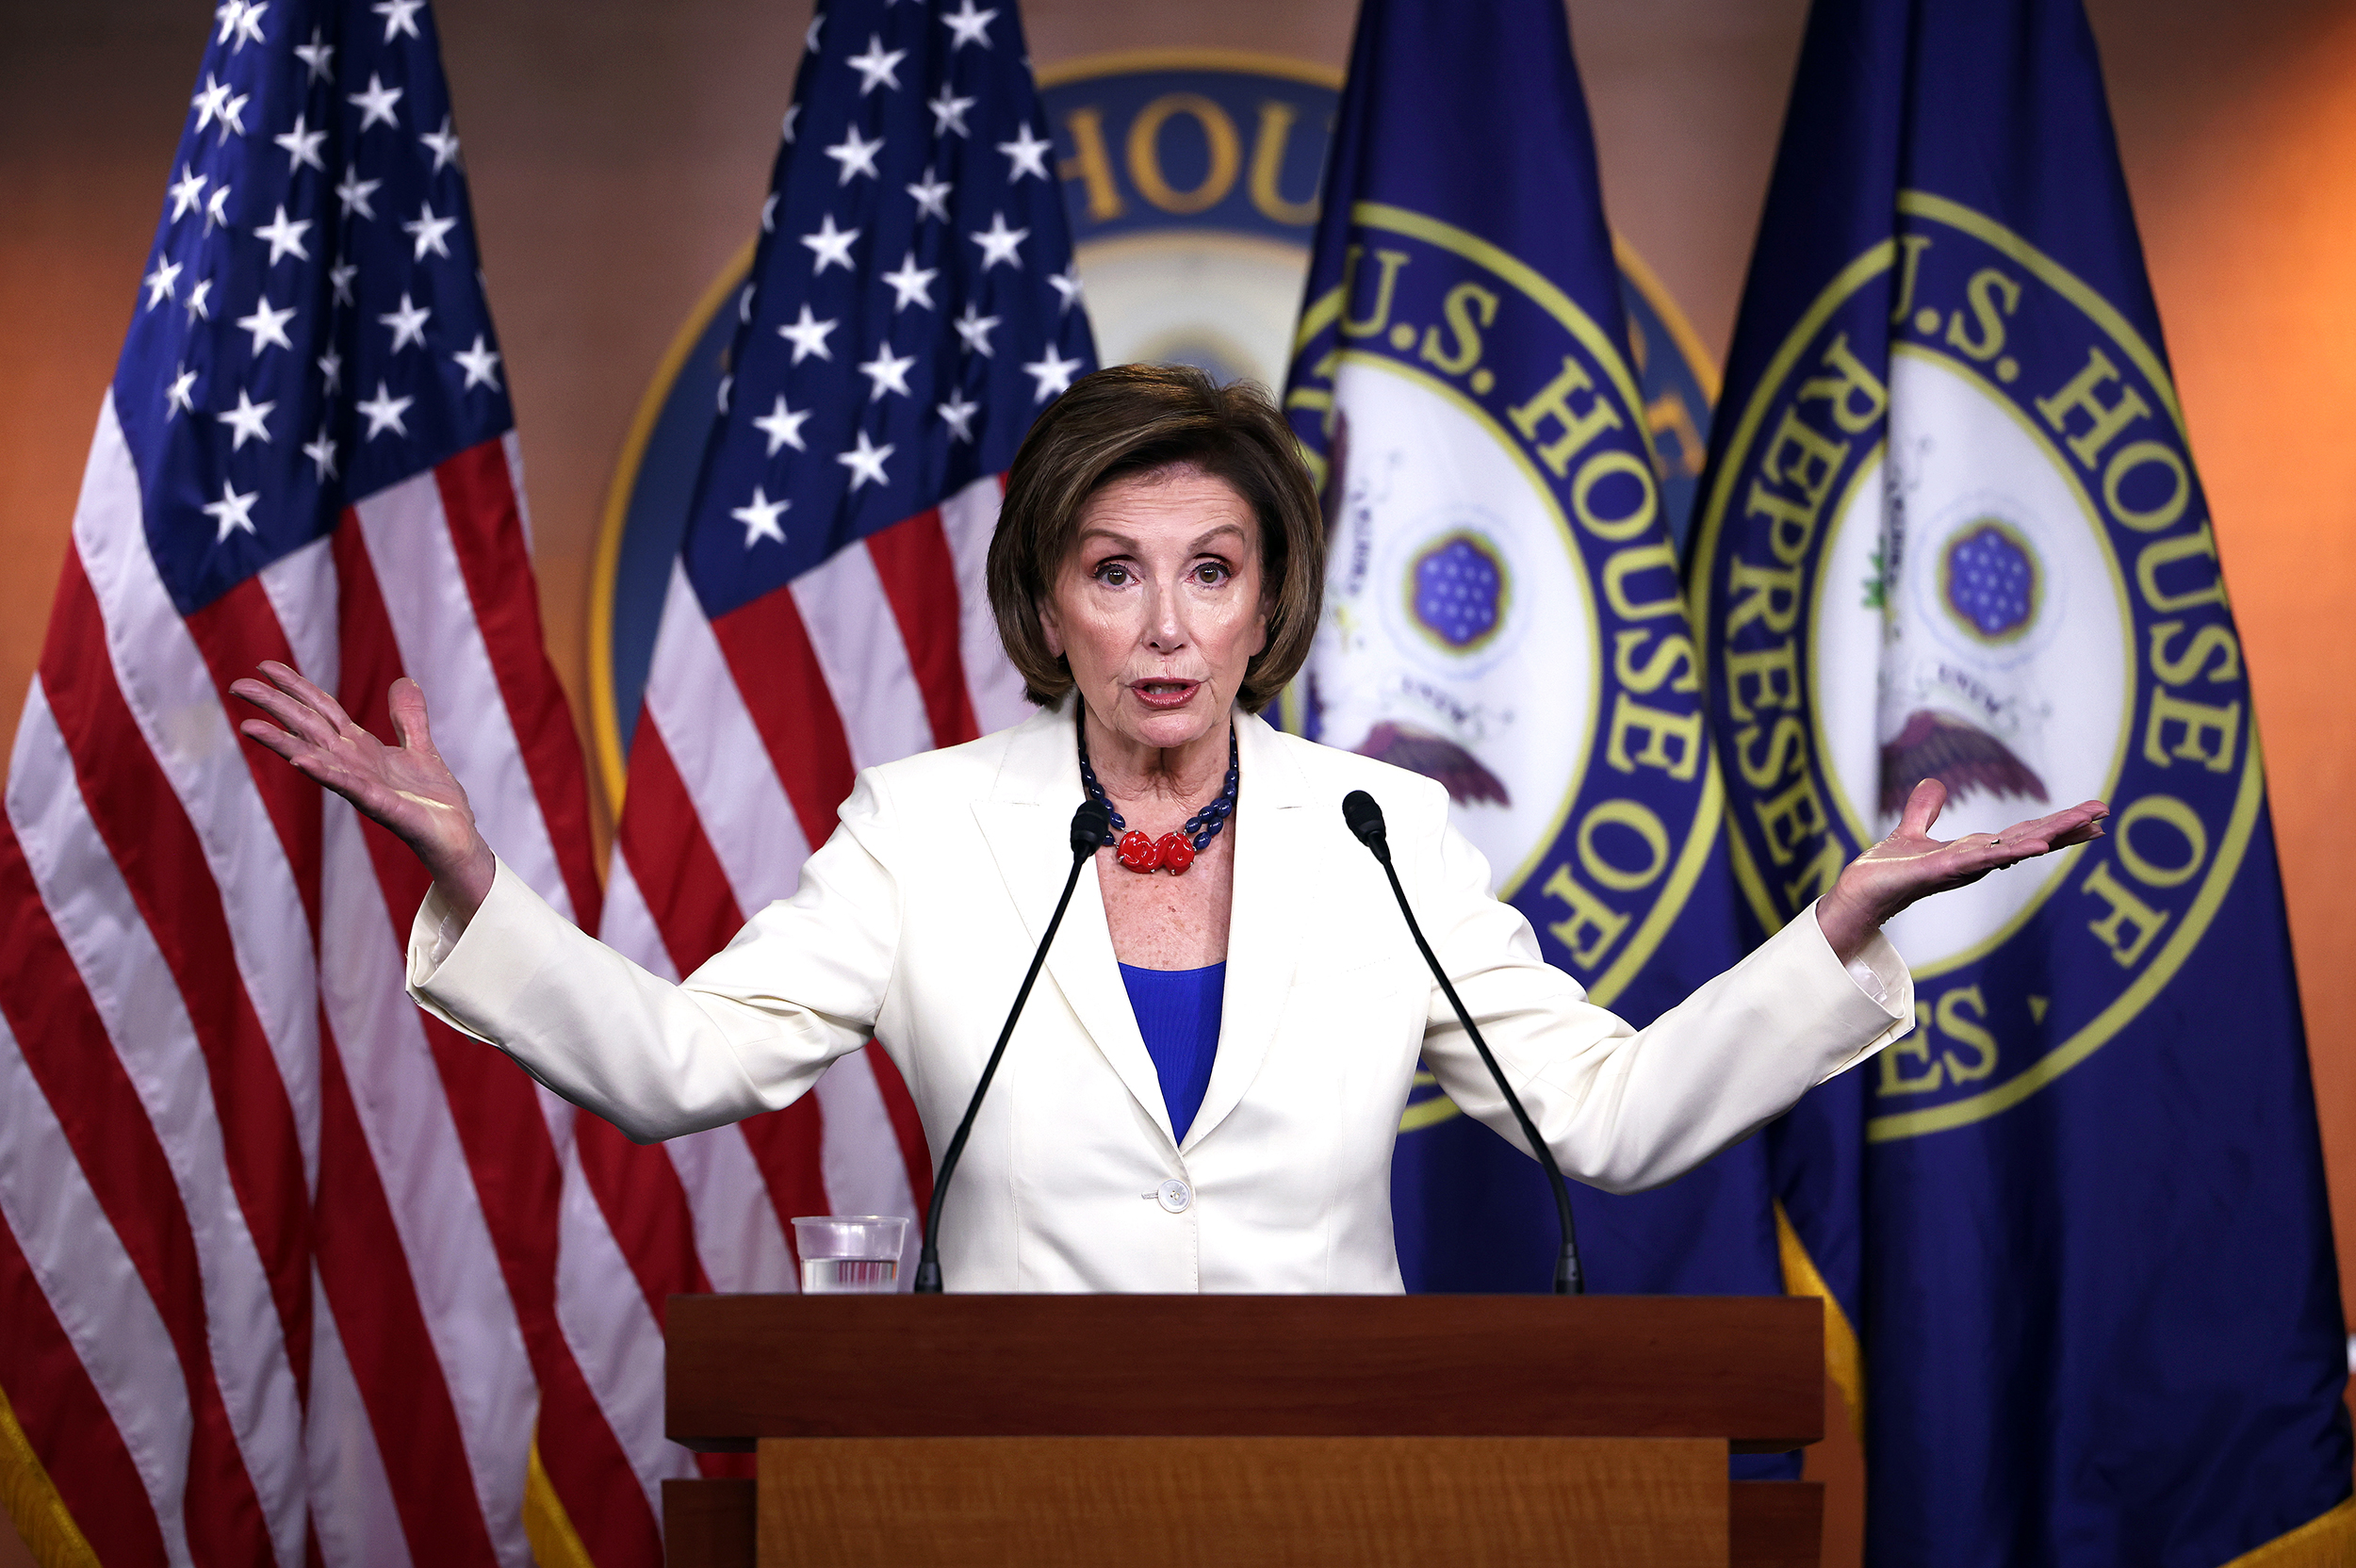 Pelosi announces the House will establish a select committee to investigate Capitol riot